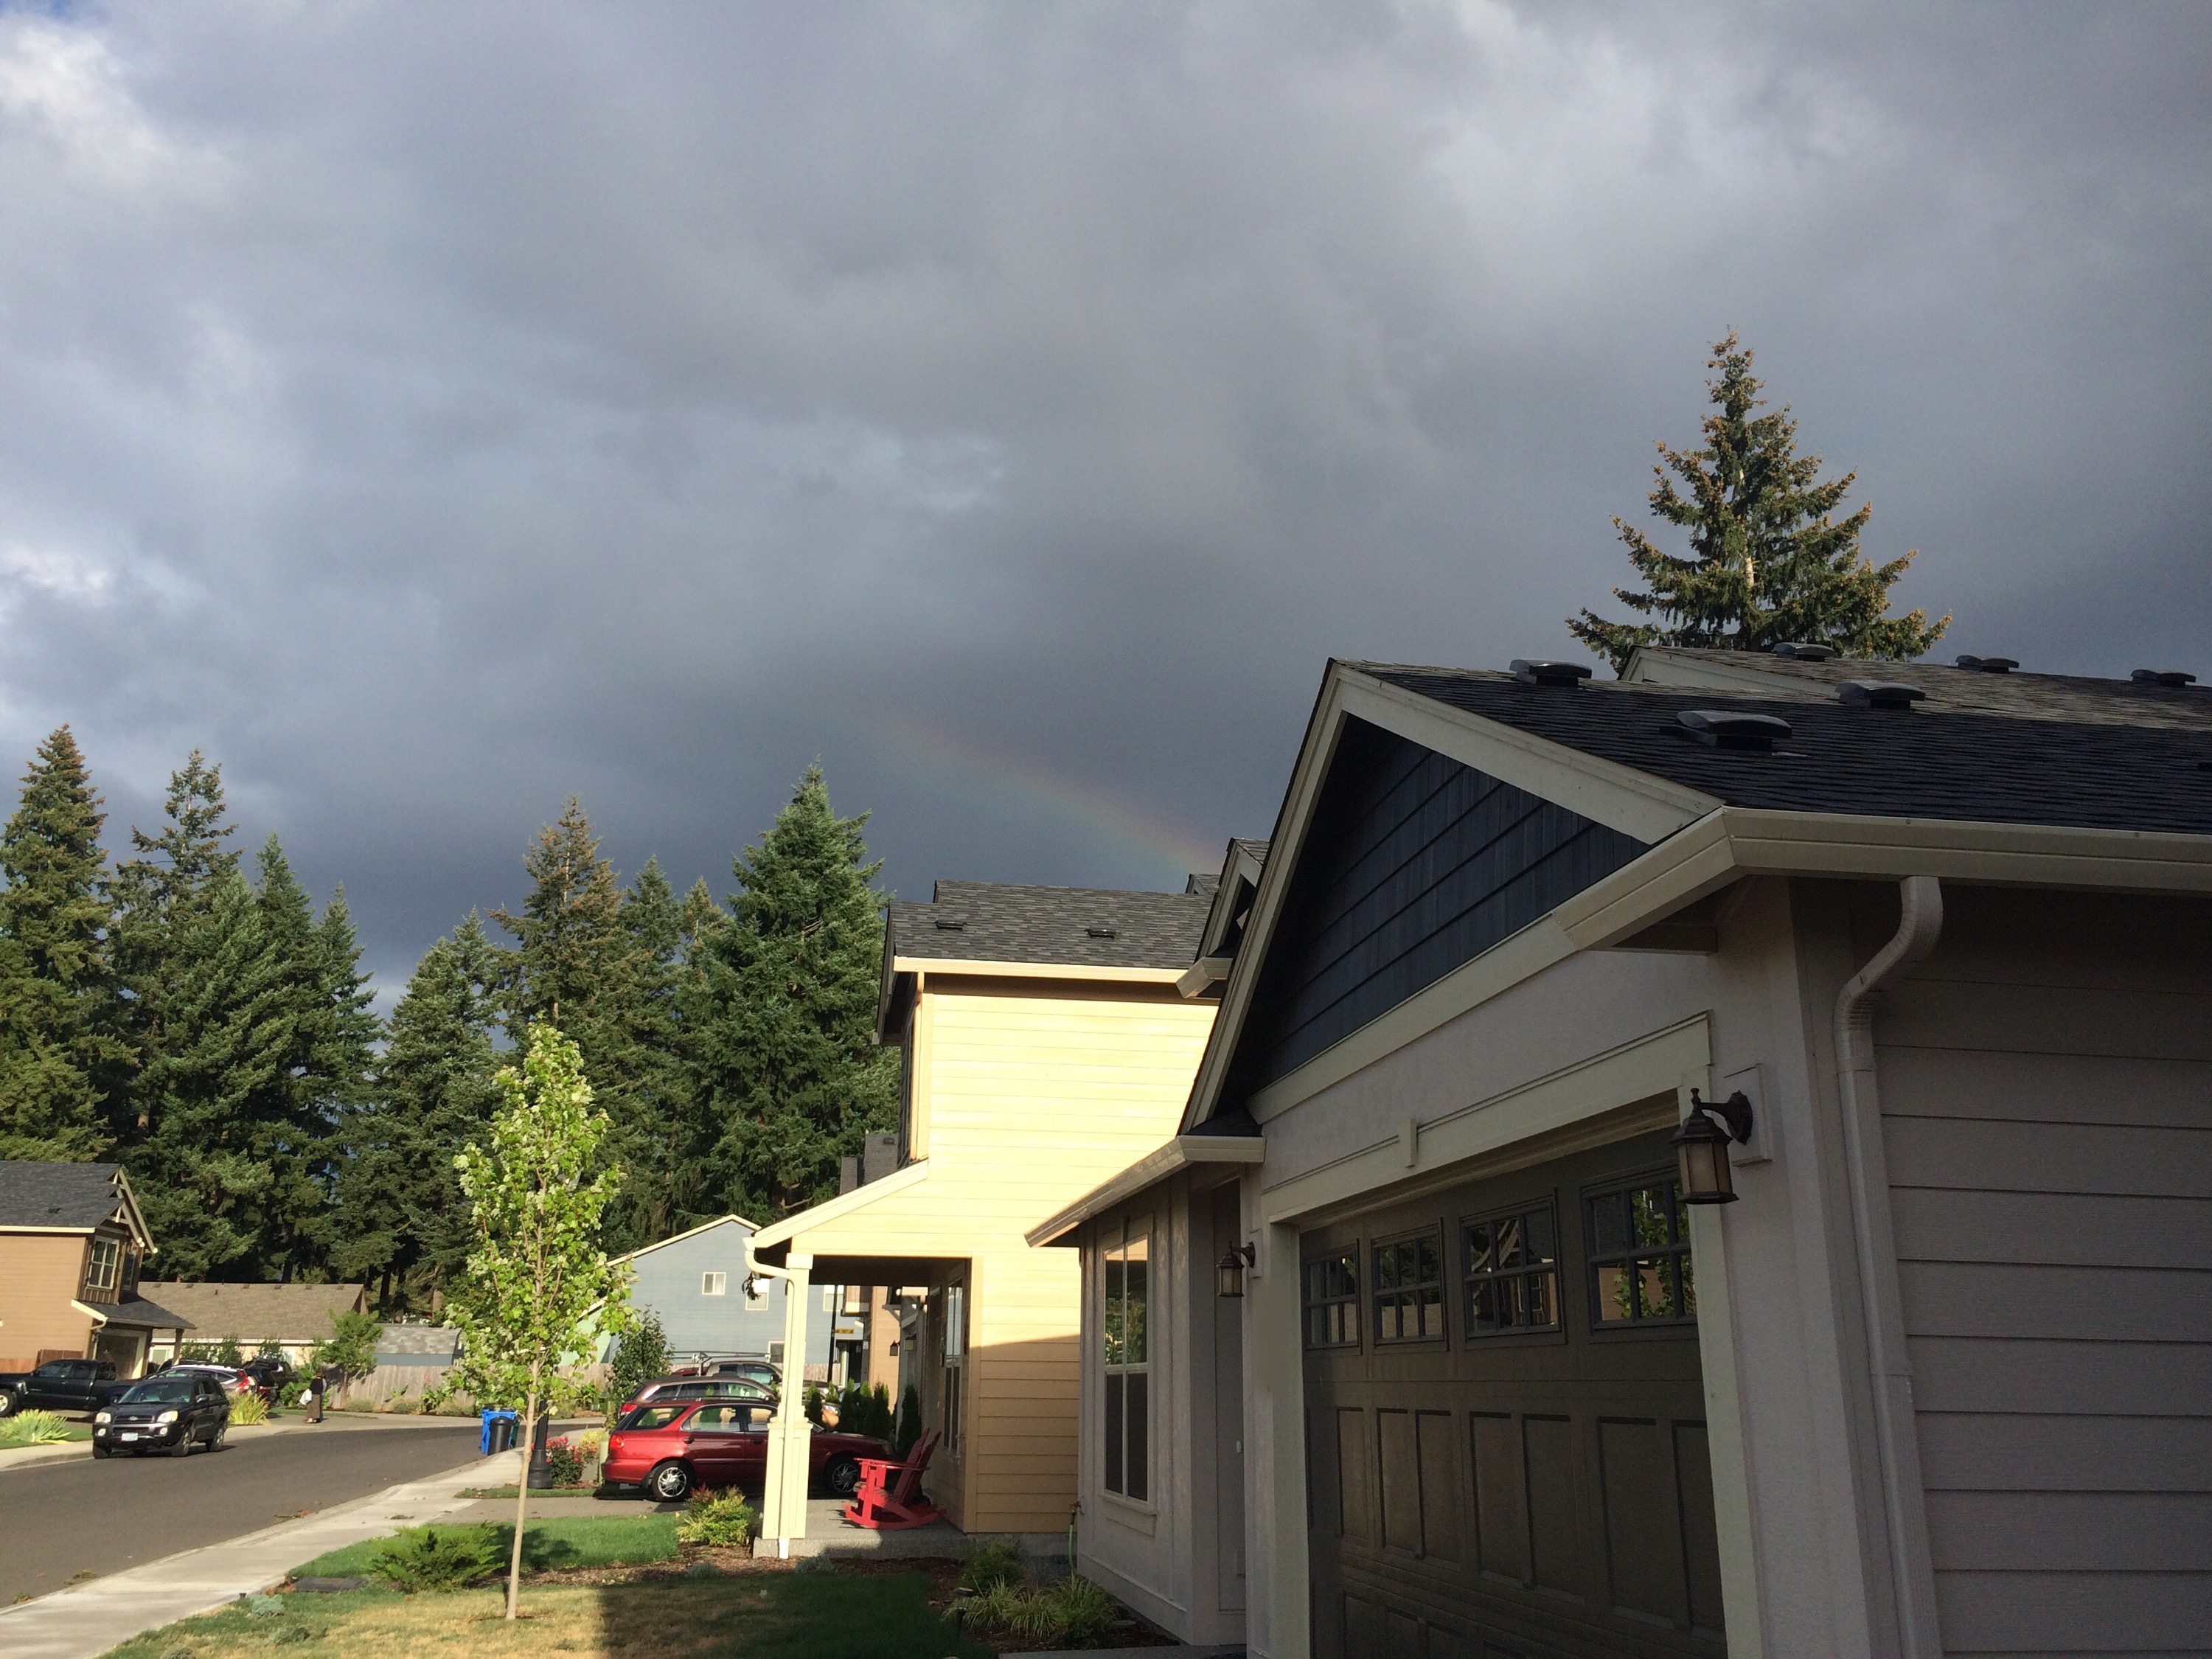 Half of a broad rainbow arc emerges from the roofline of our single-story house, above our neighbor's house, in front of a dark grey cloudy sky and the huge fir trees in our neighborhood.